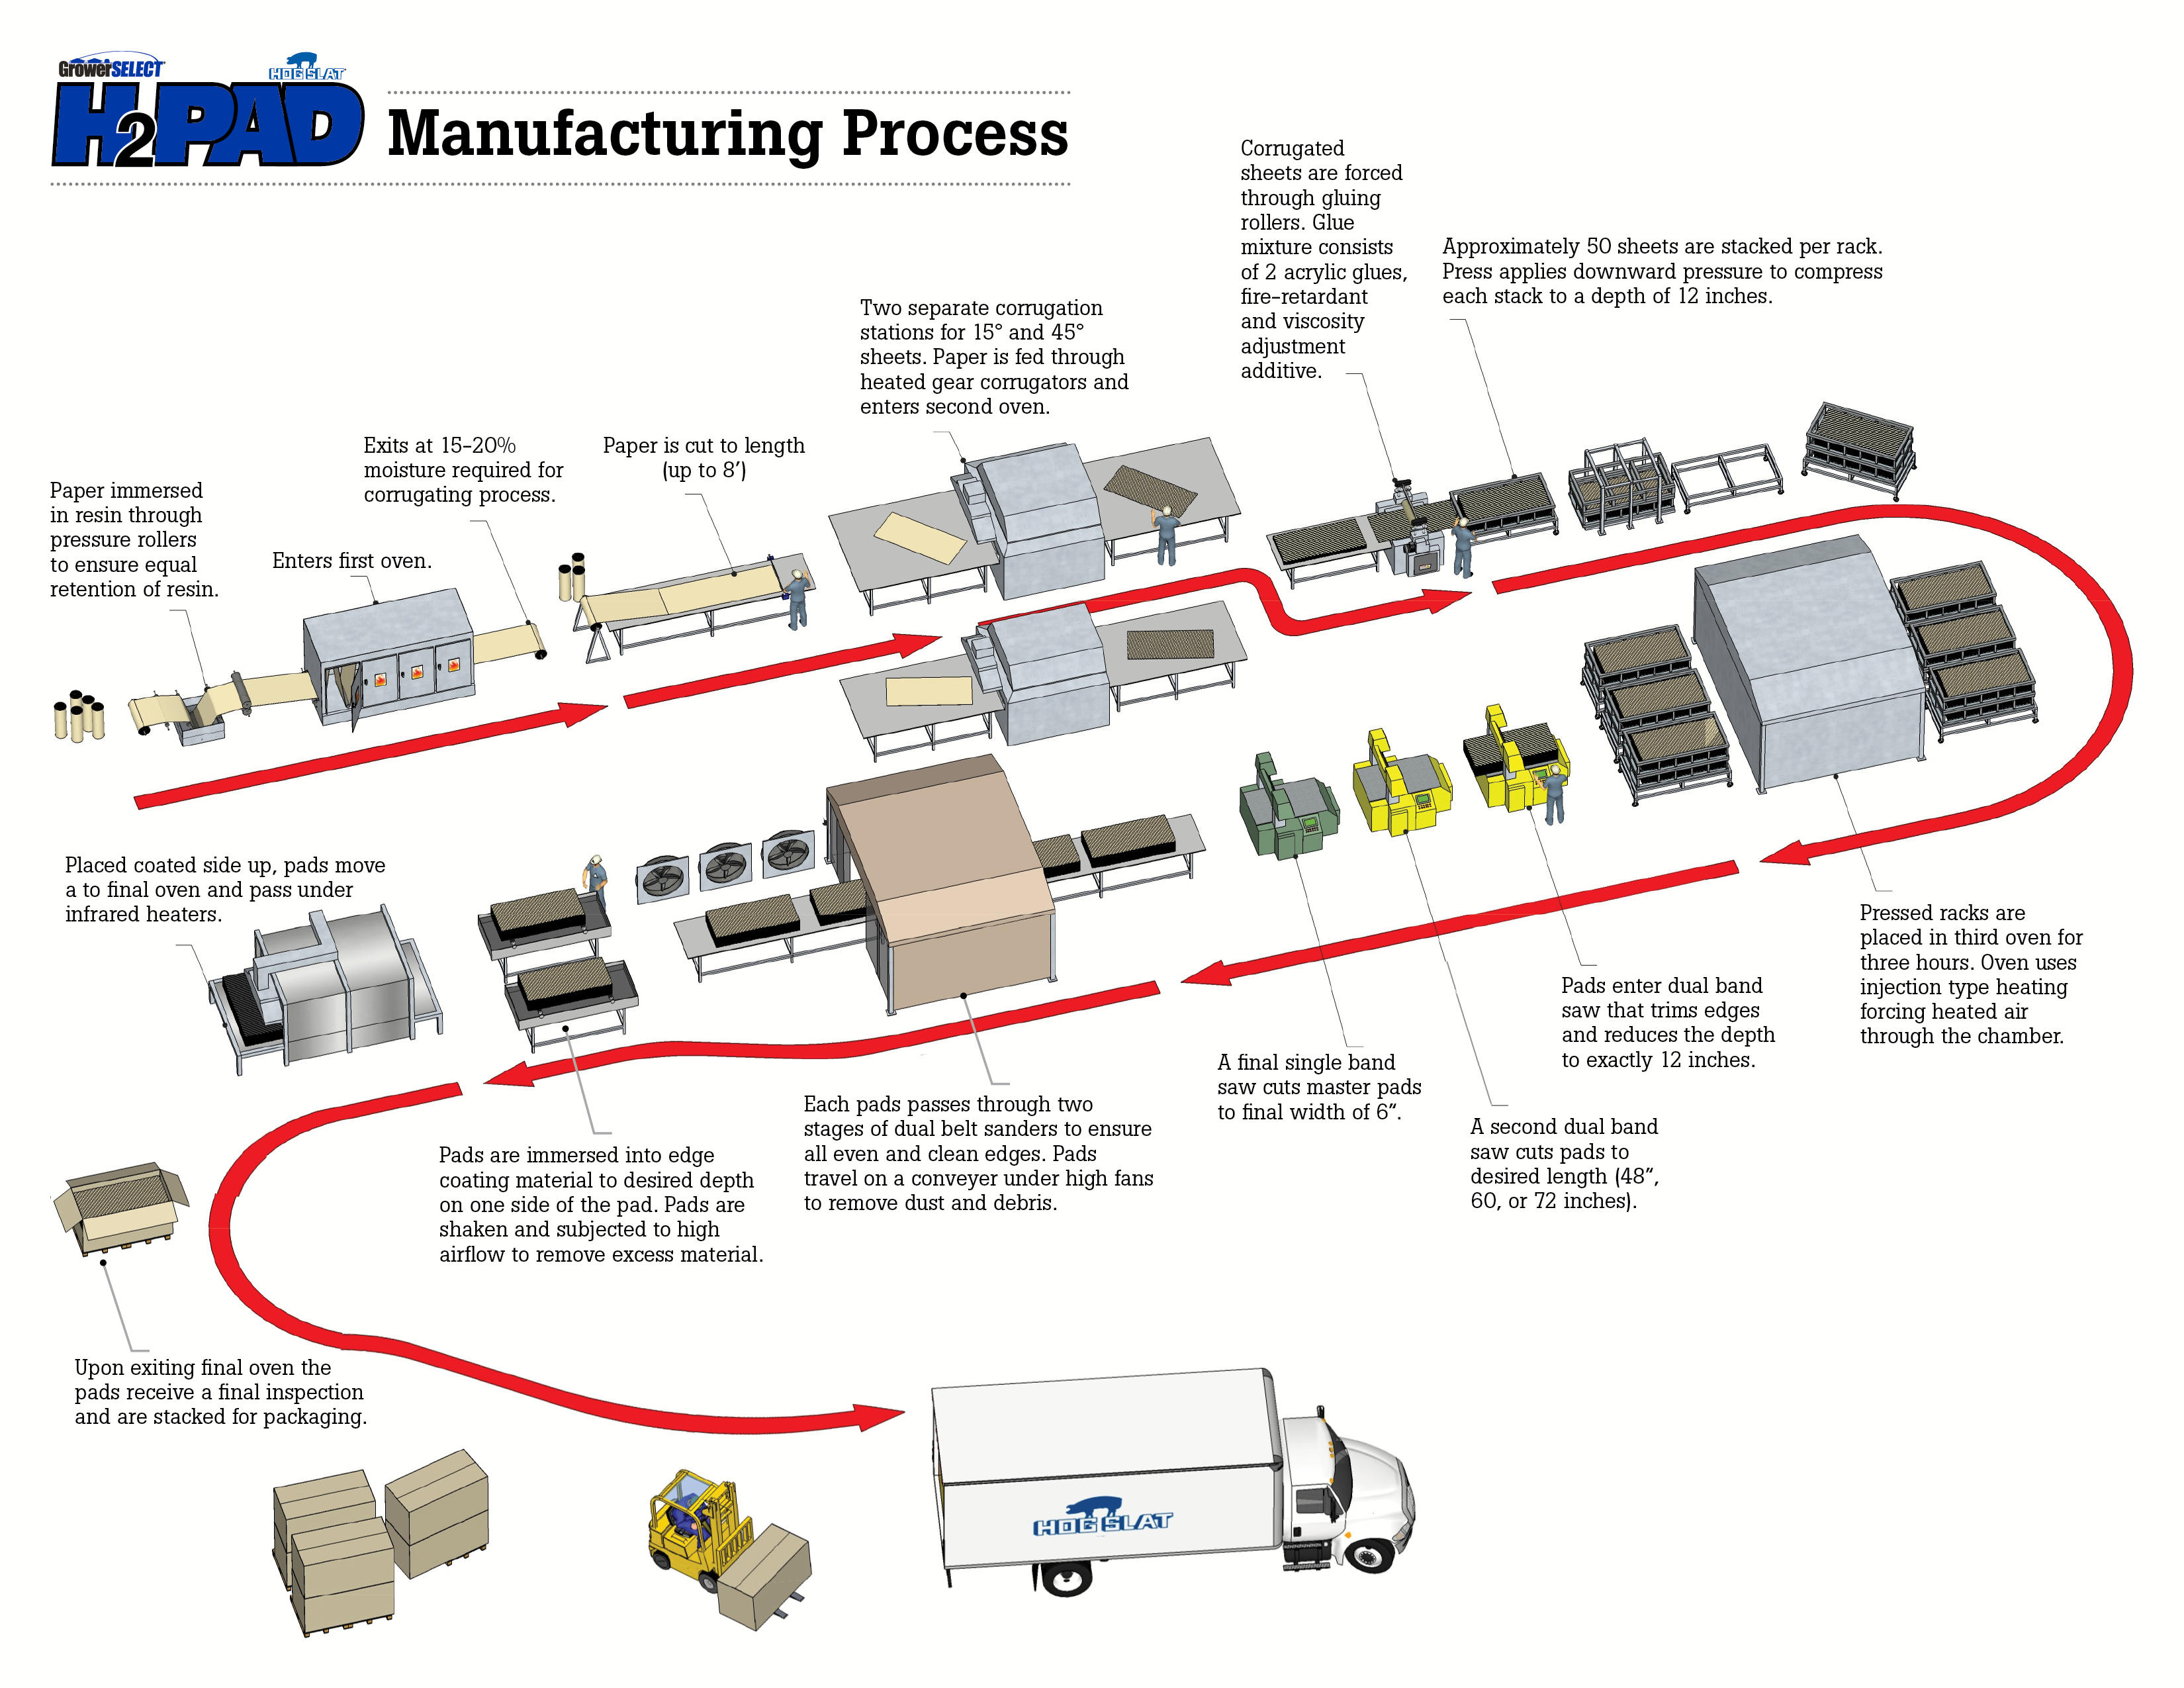 manufacturing processes Almost all nike shoes are manufactured outside of the united states the leading manufacturer of nike shoes is china and vietnam each accounting for 36% of the total manufactured world wide indonesia accounts for 22% and thailand for 6% of the nike shoes that are being produced world widethere are.